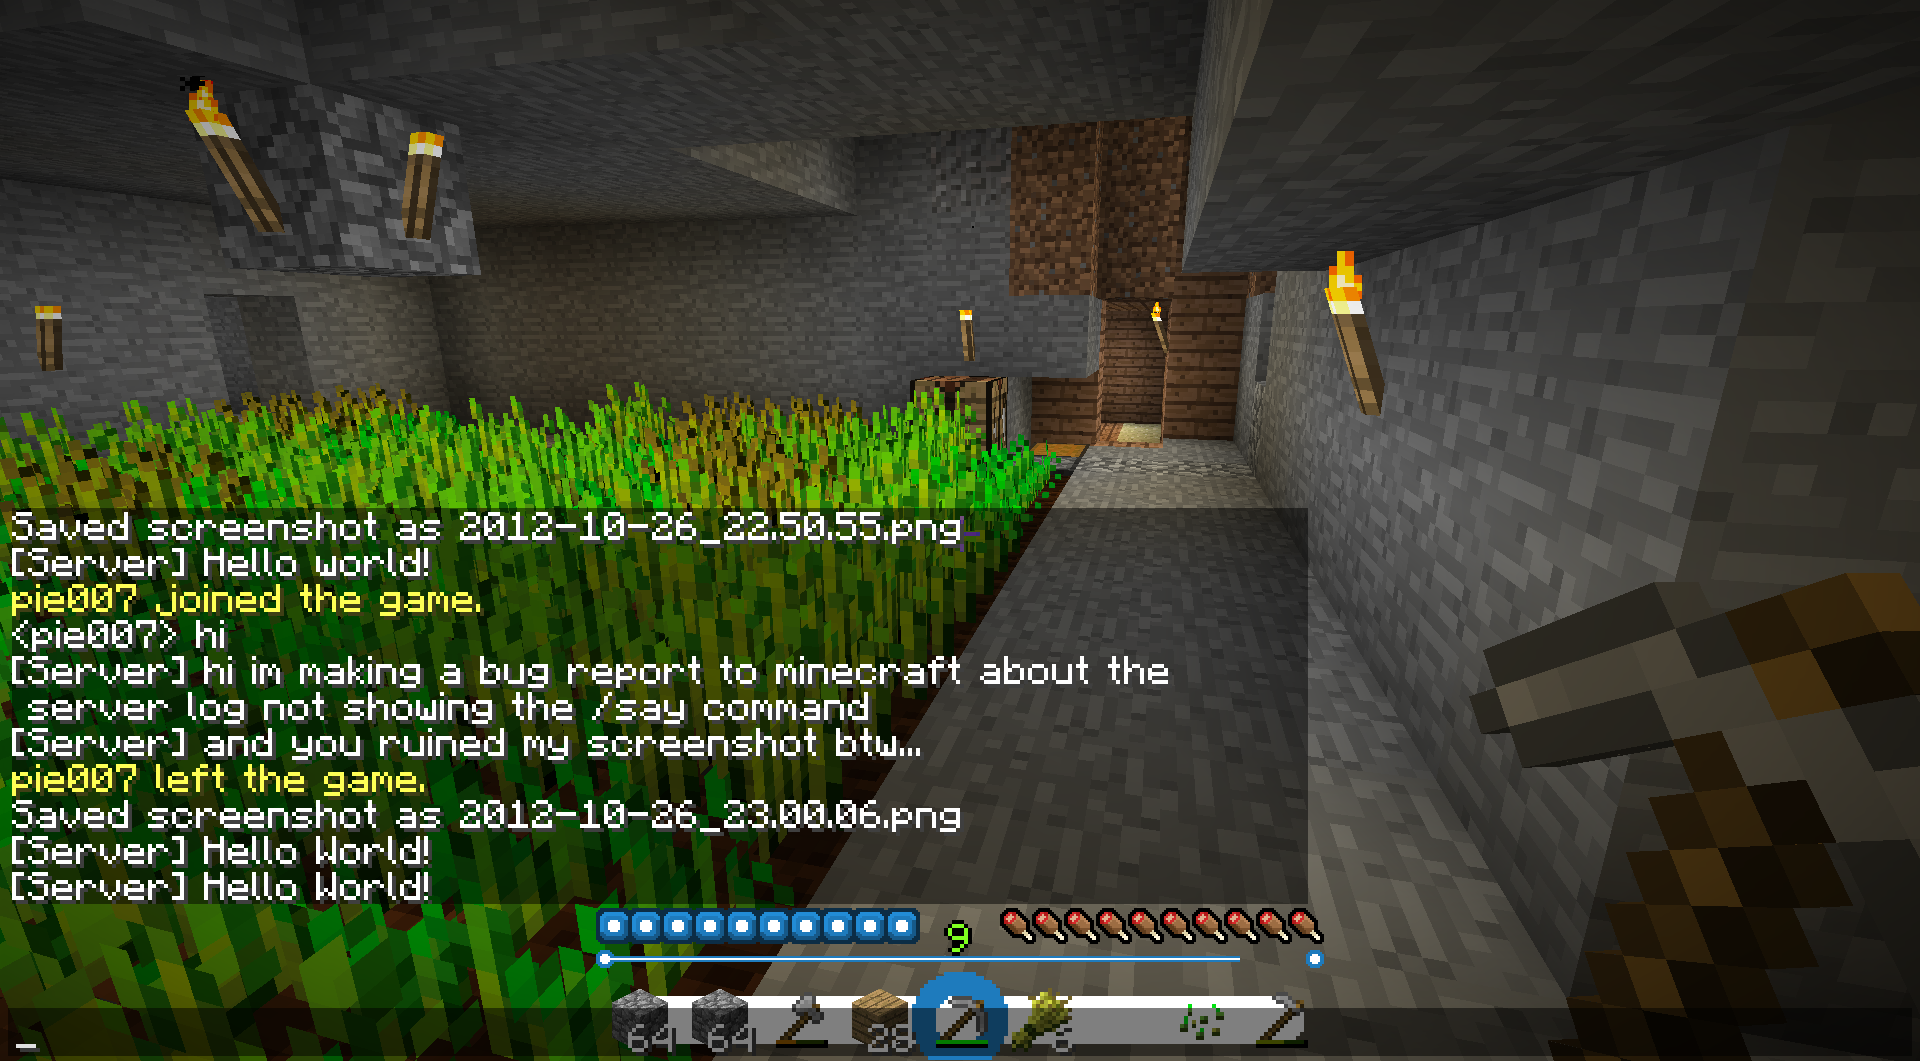 MC-12] In the server log, /say commands performed by the server